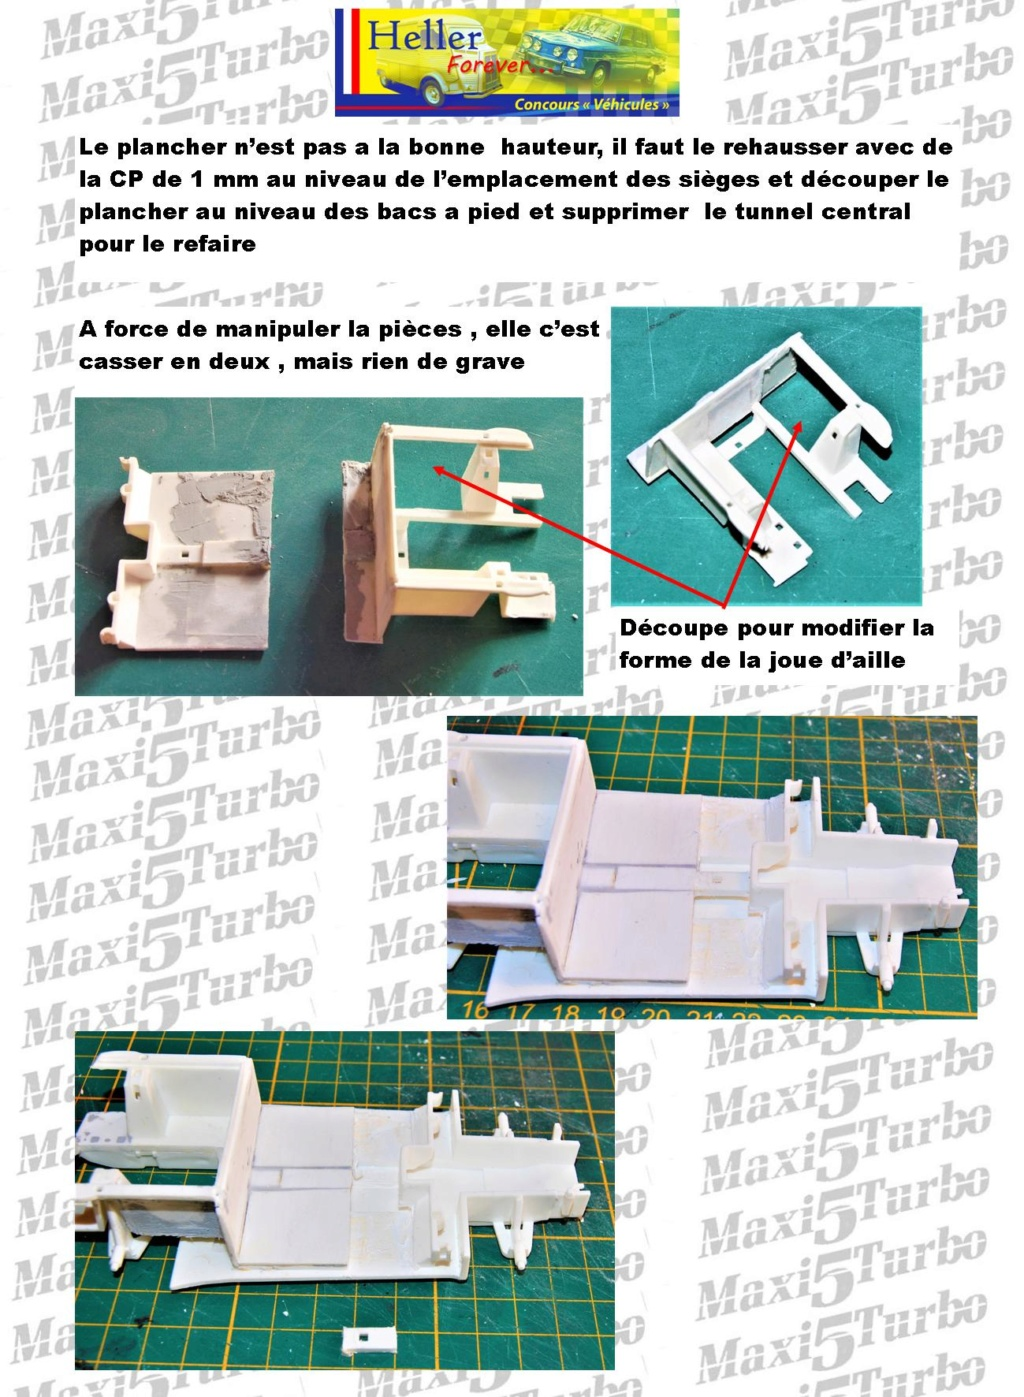 (1/24) Renault 5 Maxi turbo Ref 80717 ( Hors delai ) - Page 5 6210